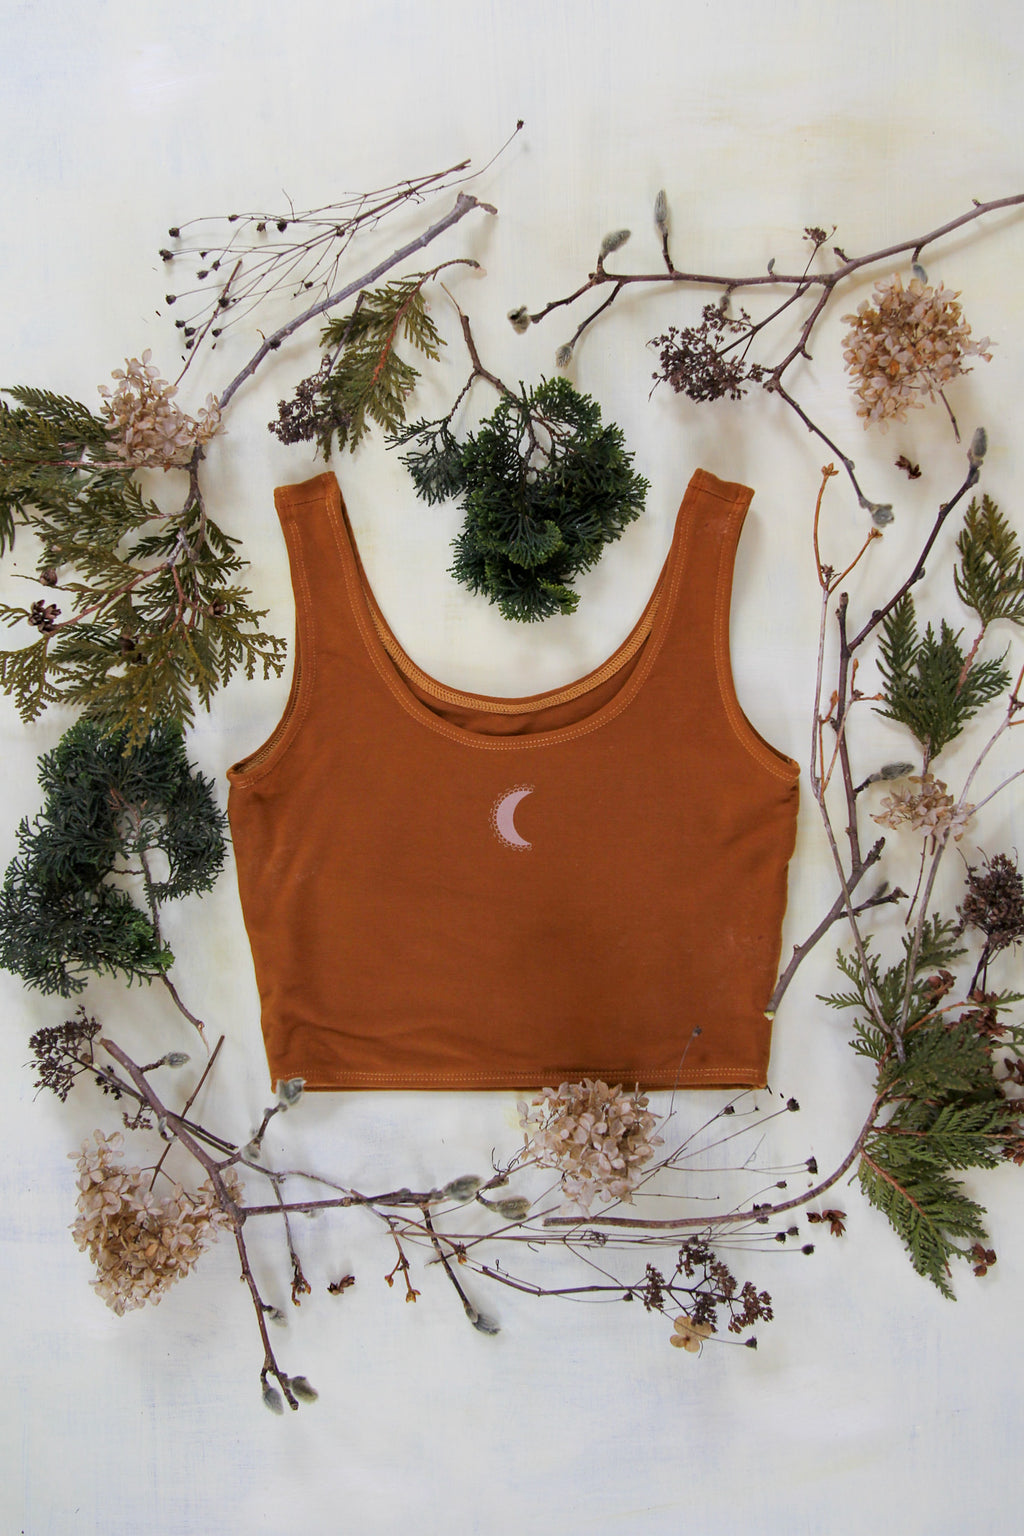 Women's sustainable yoga wear. Eco friendly and fair trade yoga top